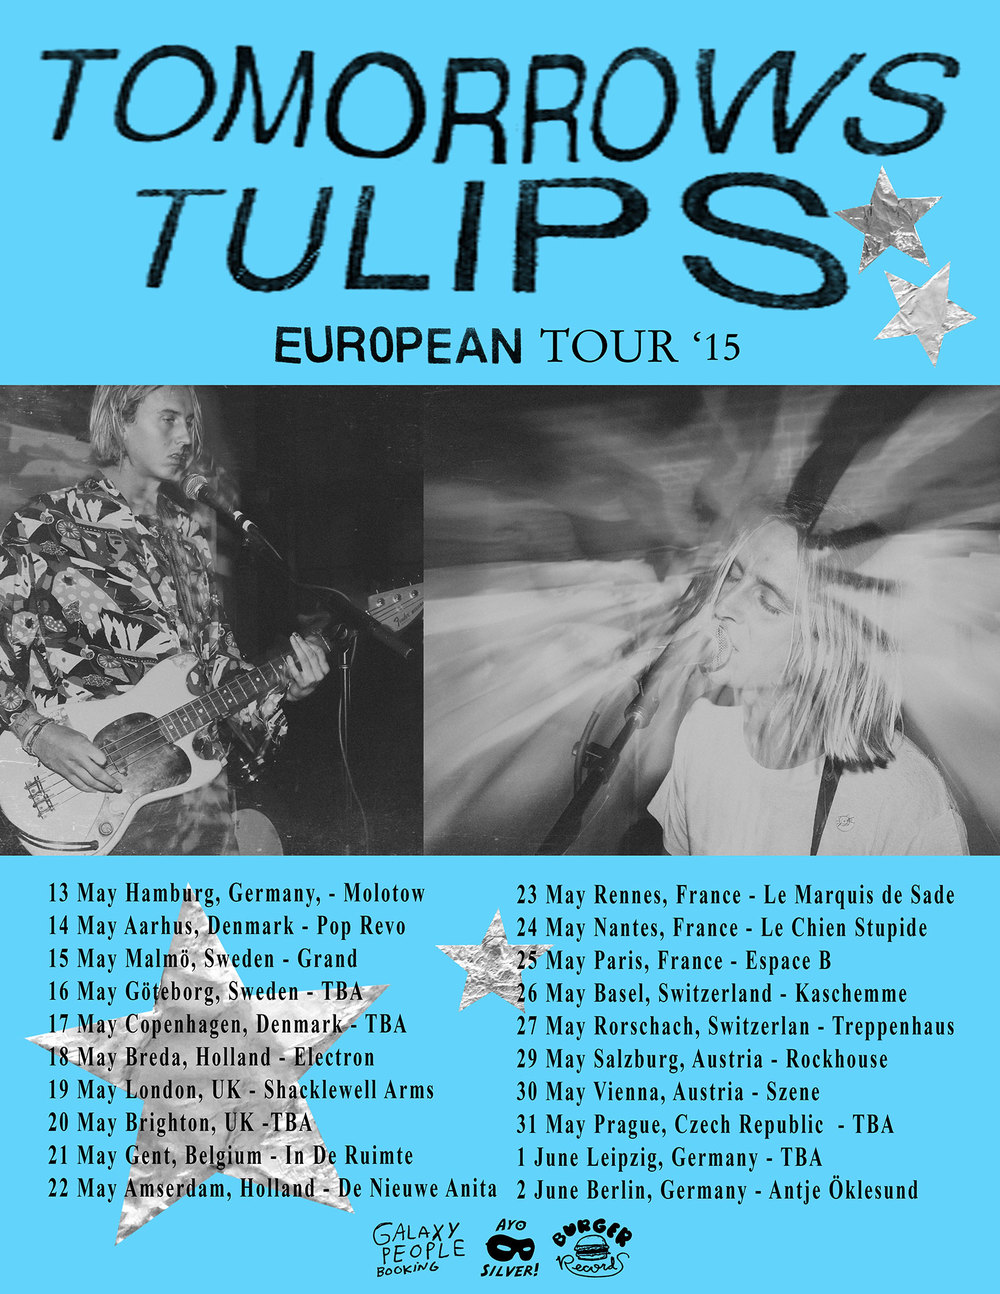 13 May Hamburg, Germany, - Molotow  14 May Aarhus, Denmark - Pop Revo  15 May Malmö, Sweden - Grand  16 May Göteborg, Sweden - TBA  17 May Copenhagen, Denmark - TBA 18 May Breda, Holland - Electron  19 May London, UK - Shacklewell Arms  20 May Brighton, UK -TBA 21 May Gent, Belgium - In De Ruimte  22 May Amsterdam, Holland - De Nieuwe Anita 23 May Rennes, France - Le Marquis de Sade  24 May Nantes, France - Le Chien Stupide  25 May Paris, France - Espace B  26 May Basel, Switzerland - Kaschemme  27 May Rorschach, Switzerland - Treppenhaus 29 May Salzburg, Austria - Rockhouse  30 May Vienna, Austria - Szene  31 May Prague, Czech Republic  - TBA  1 June Leipzig, Germany - TBA  2 June Berlin, Germany - Antje Öklesund